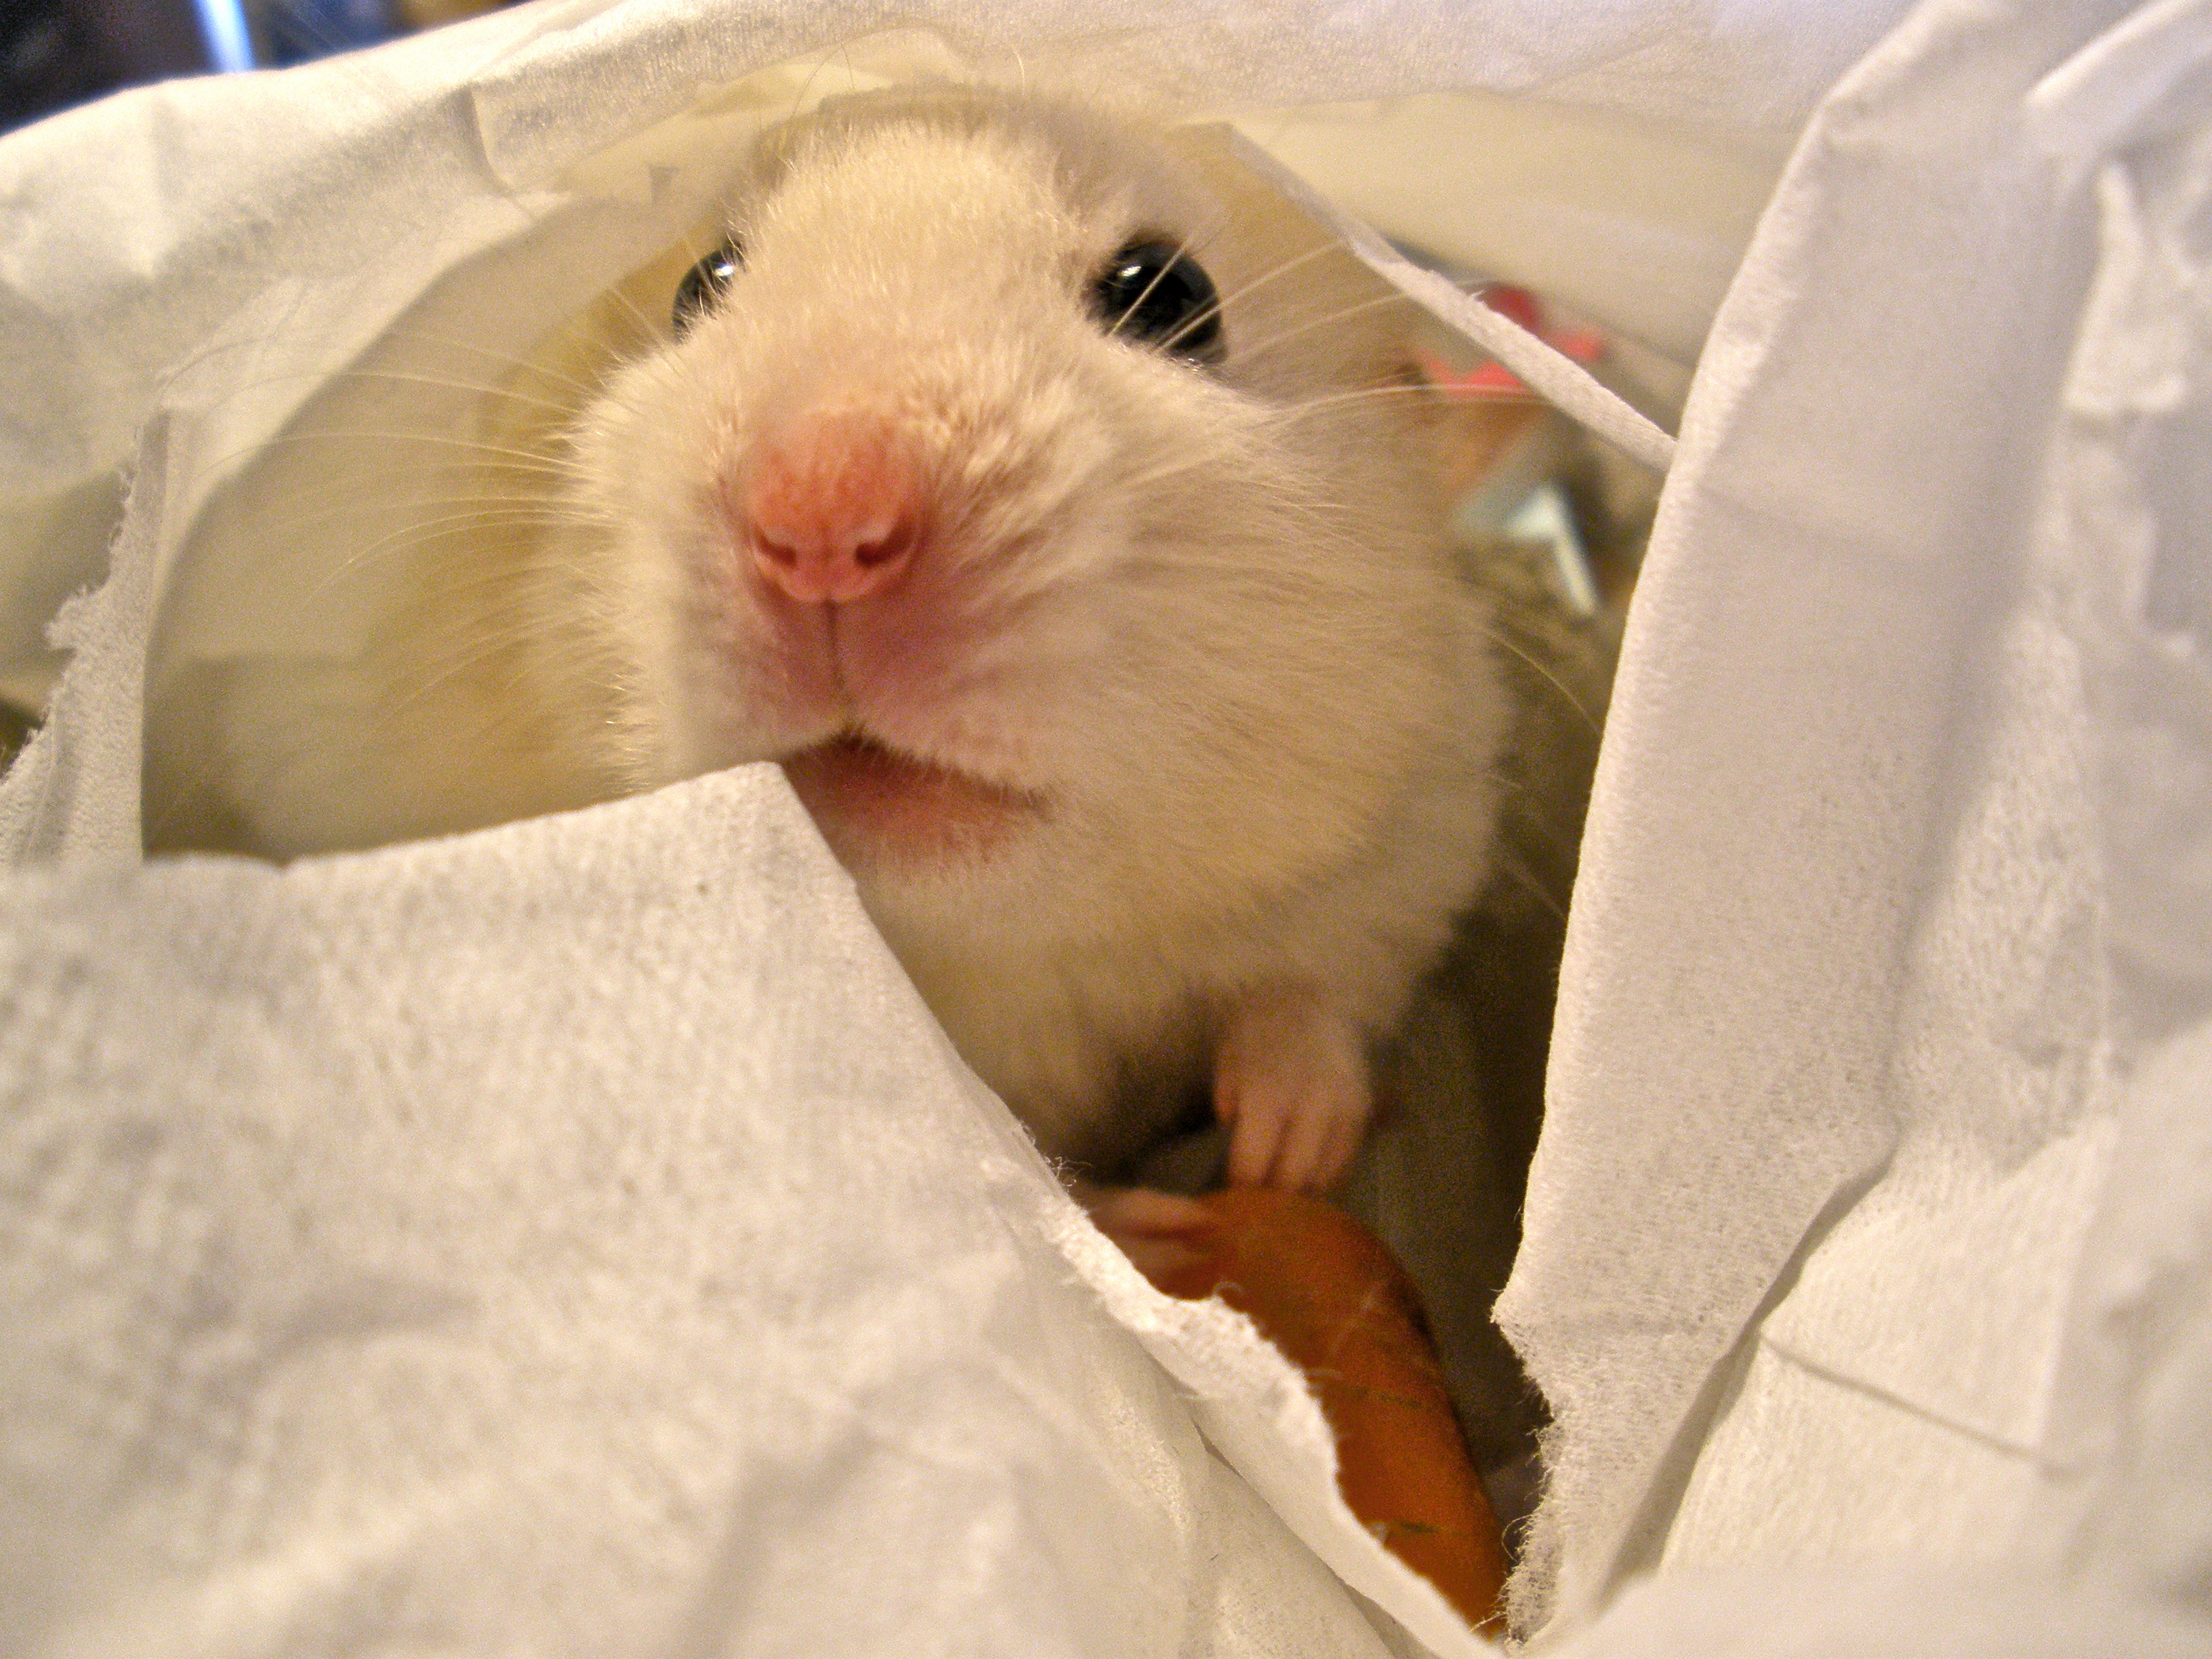 Eating a carrot in bed (EXPLORE), Adorable, Nose, White, Video, HQ Photo